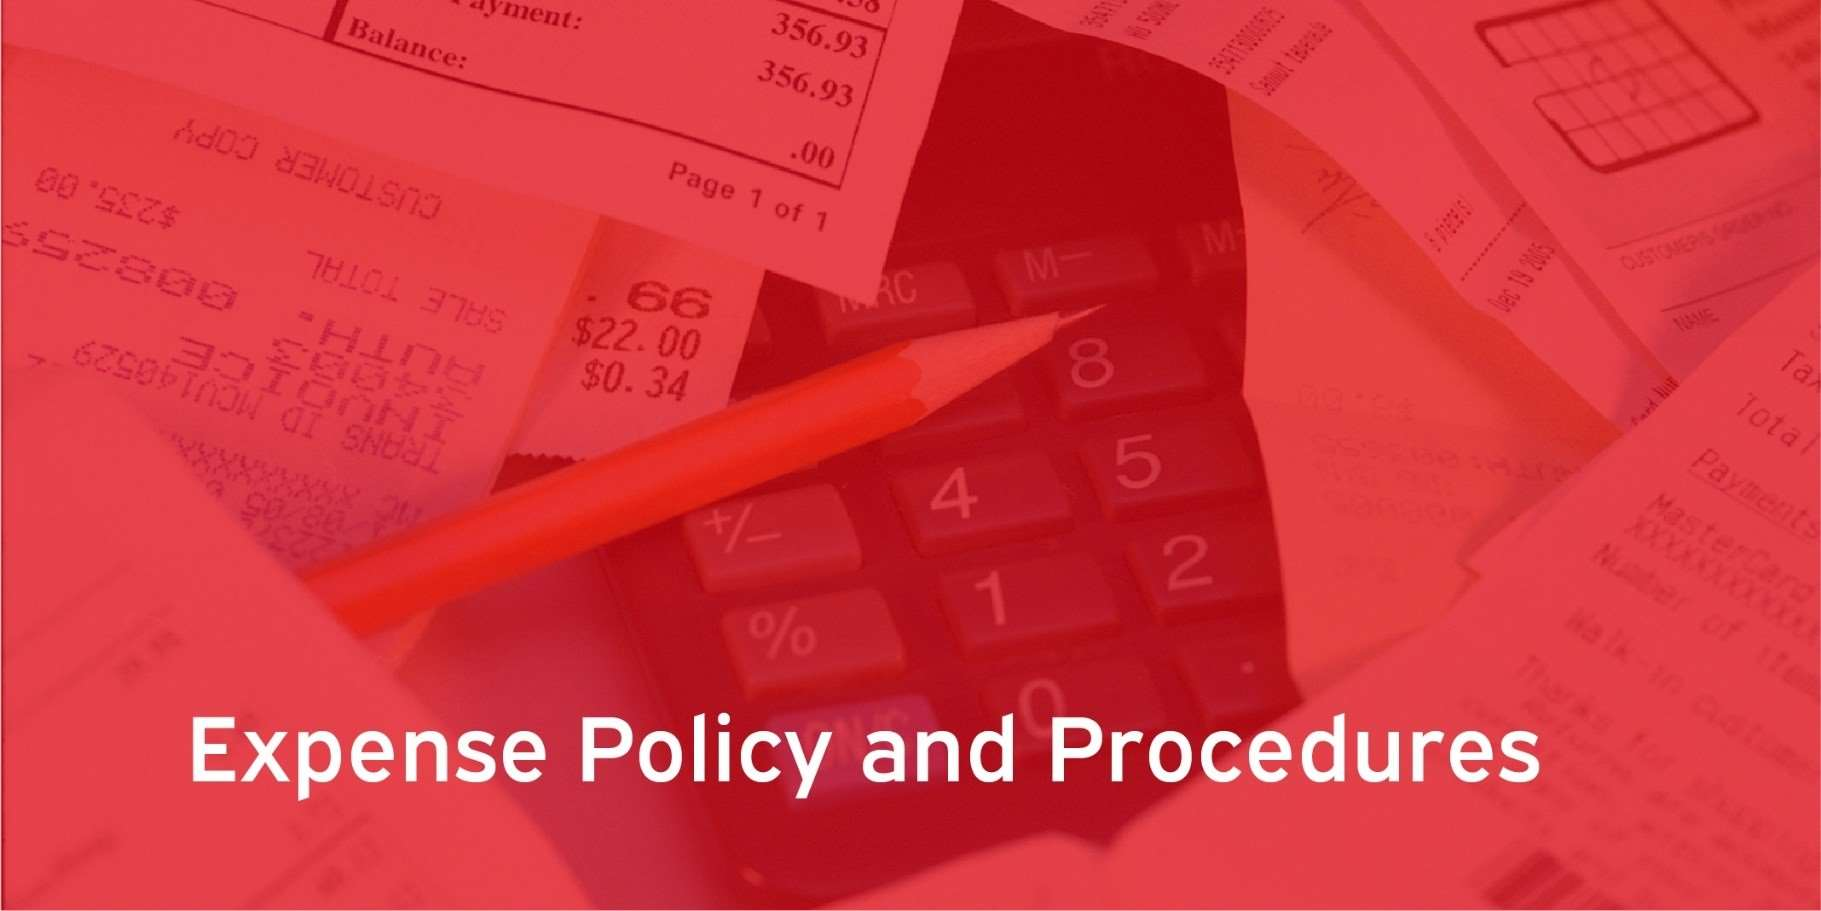 Expense policy and procedures services banner